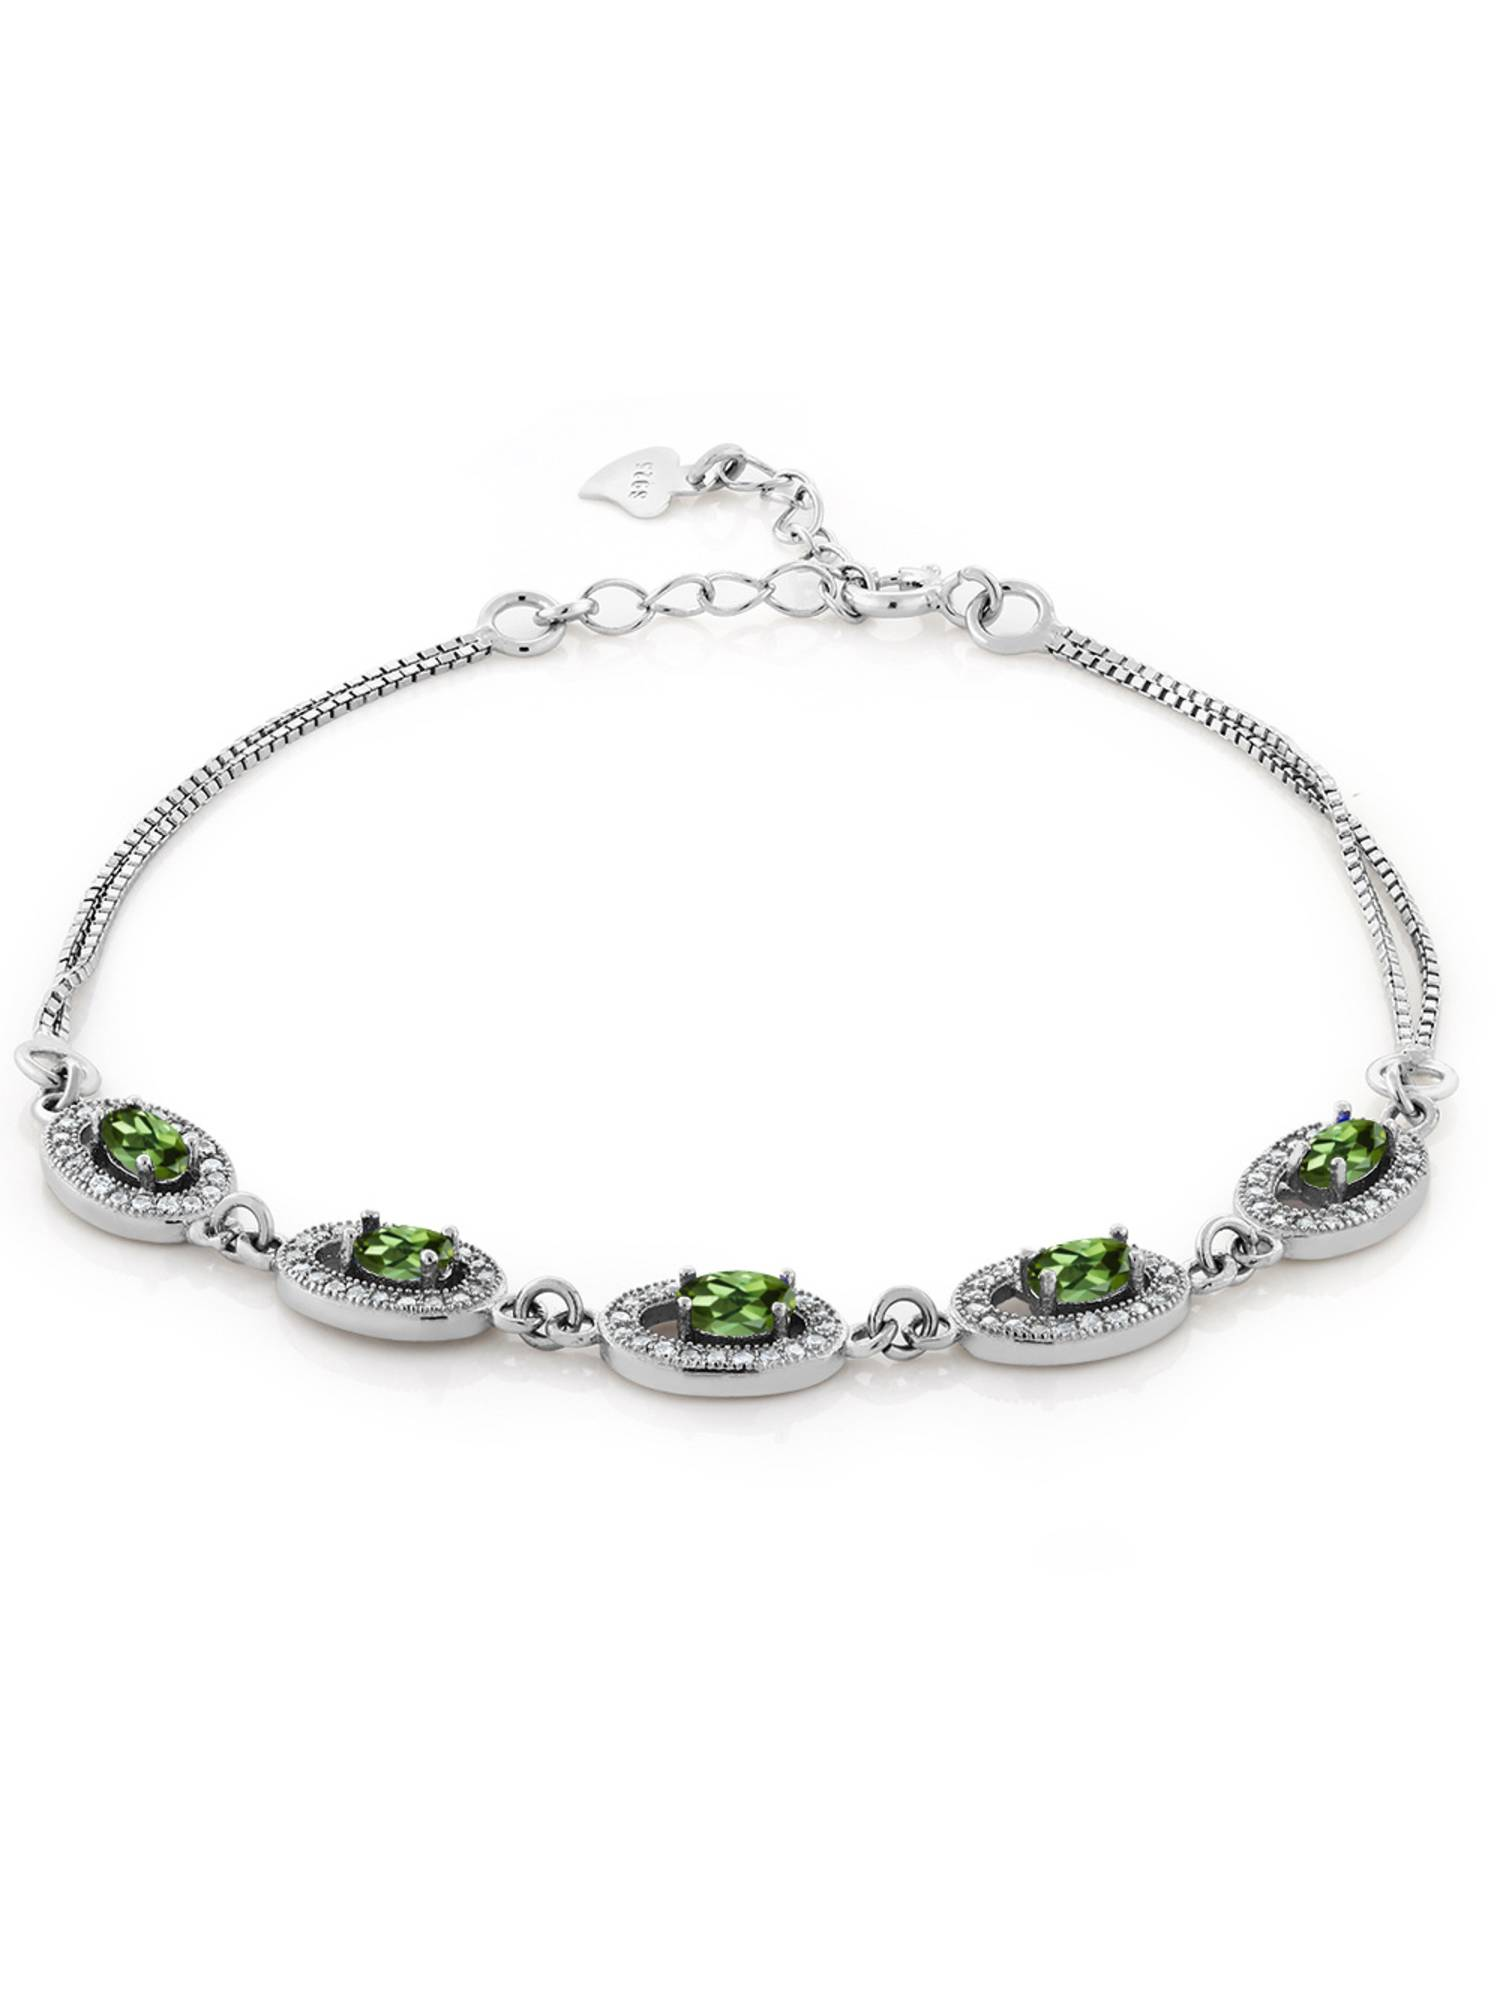 0.48 Ct Oval Green Tourmaline 925 Sterling Silver Bracelet by